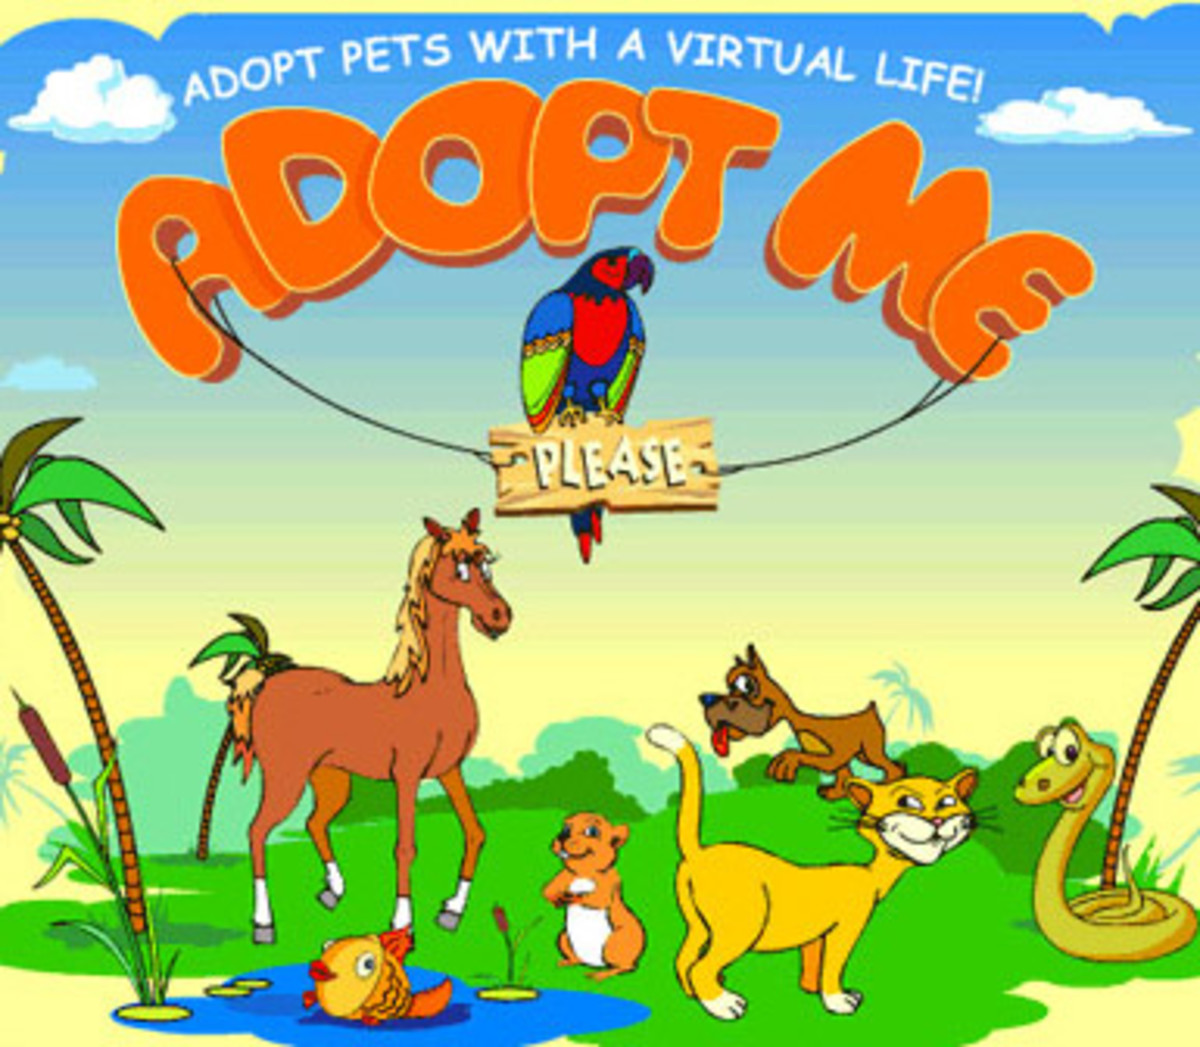 Some of the virtual pets at adoptme